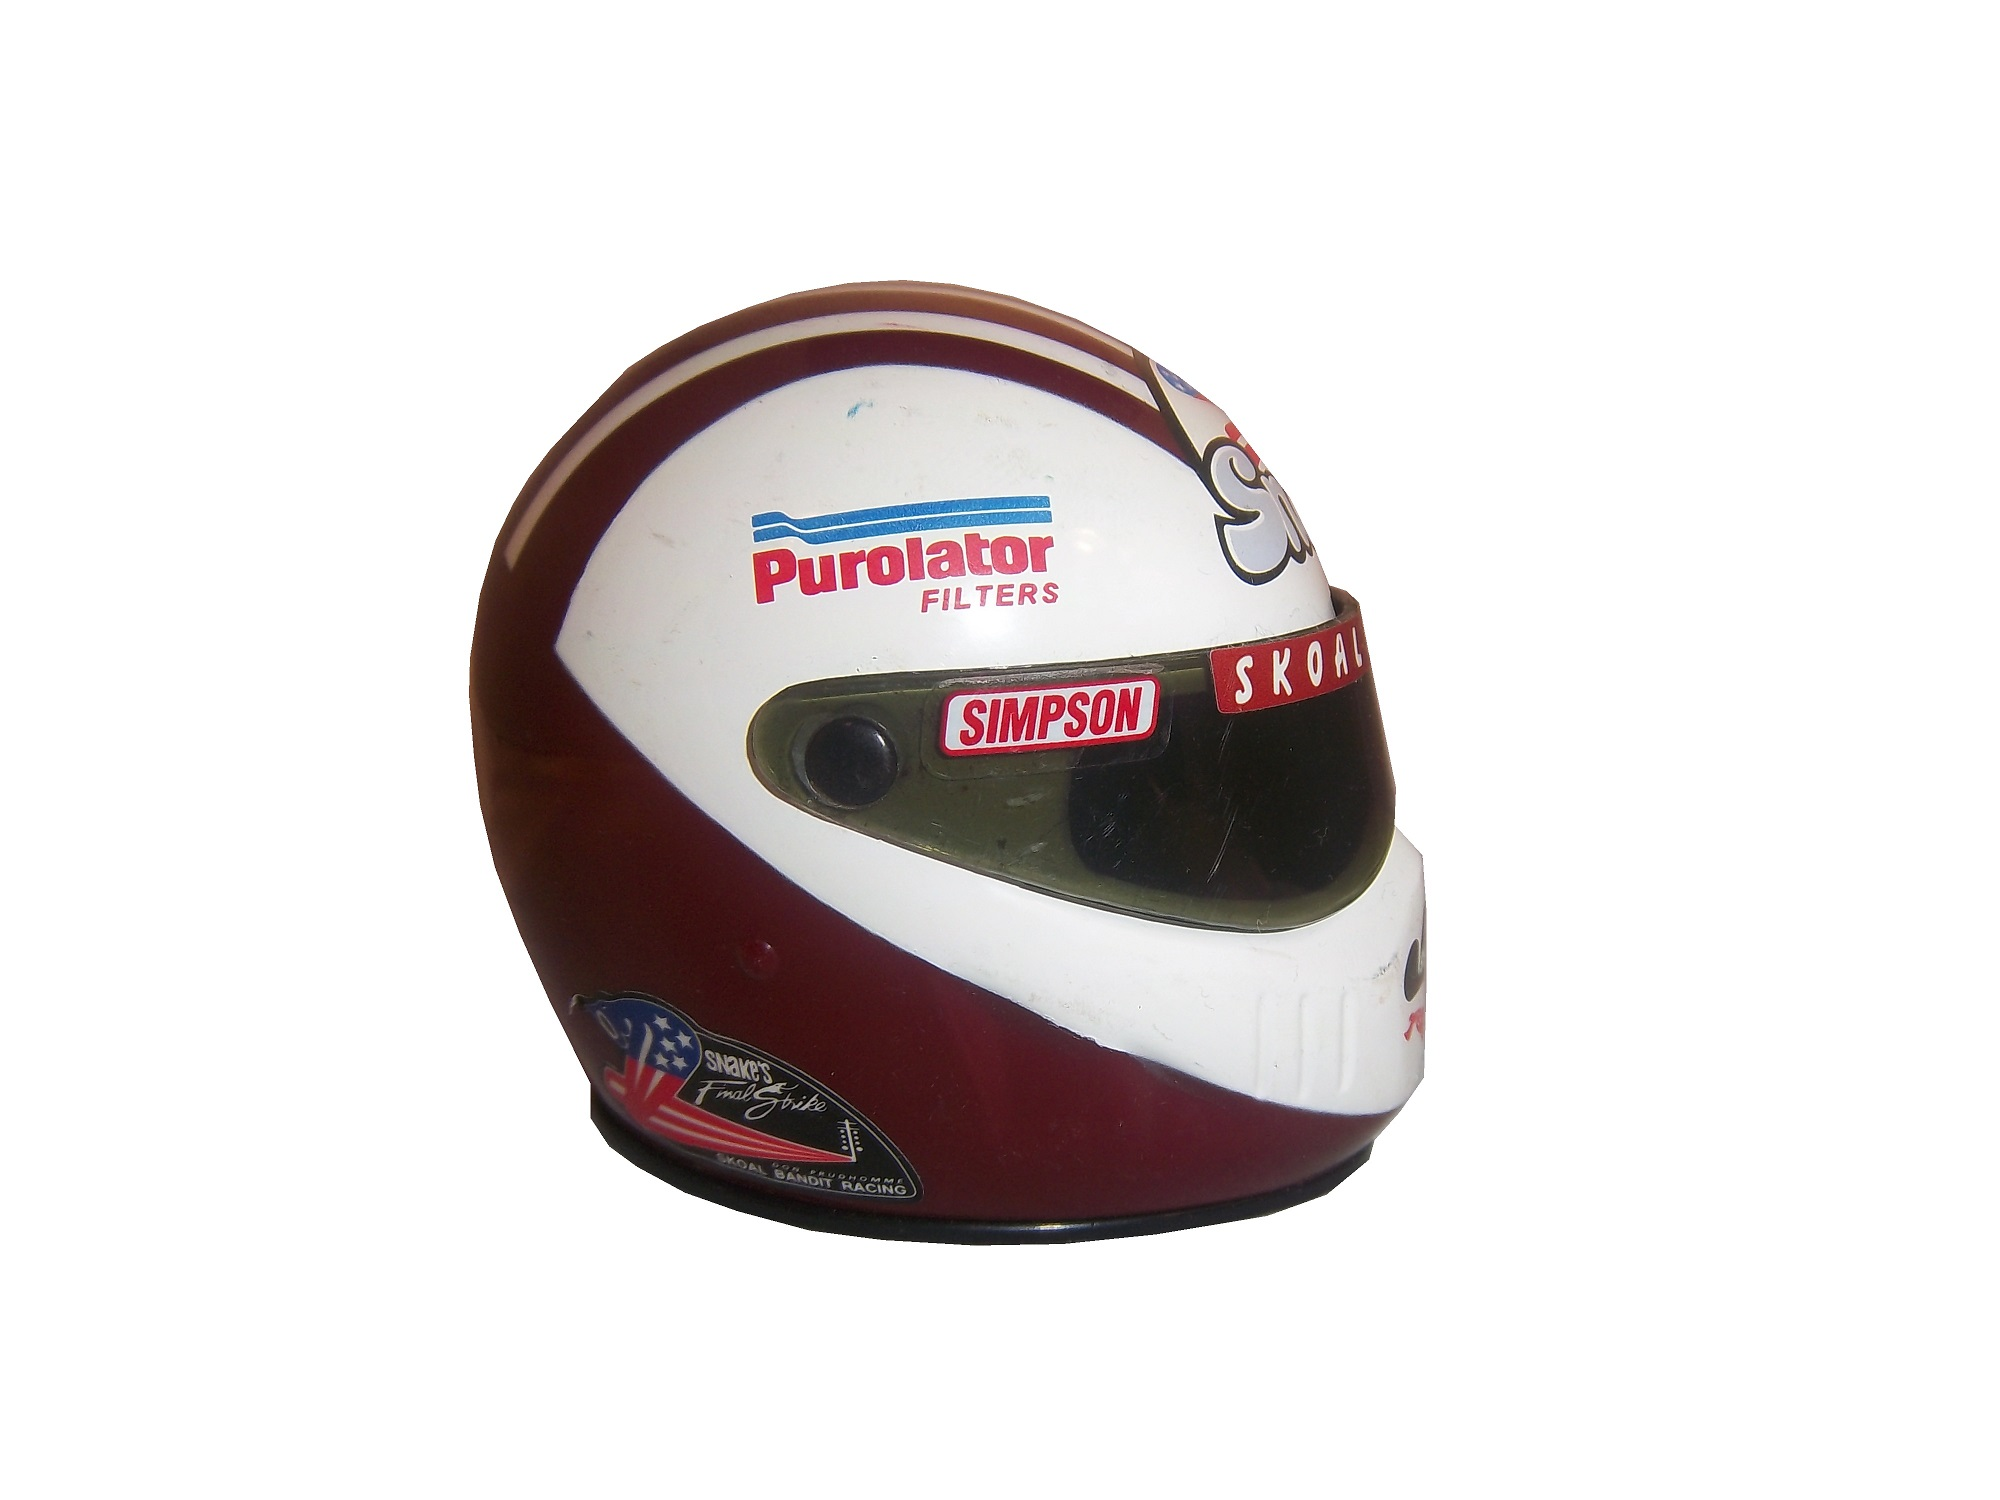 The Driver Suit Blog Replica Helmets And Why We Need Them